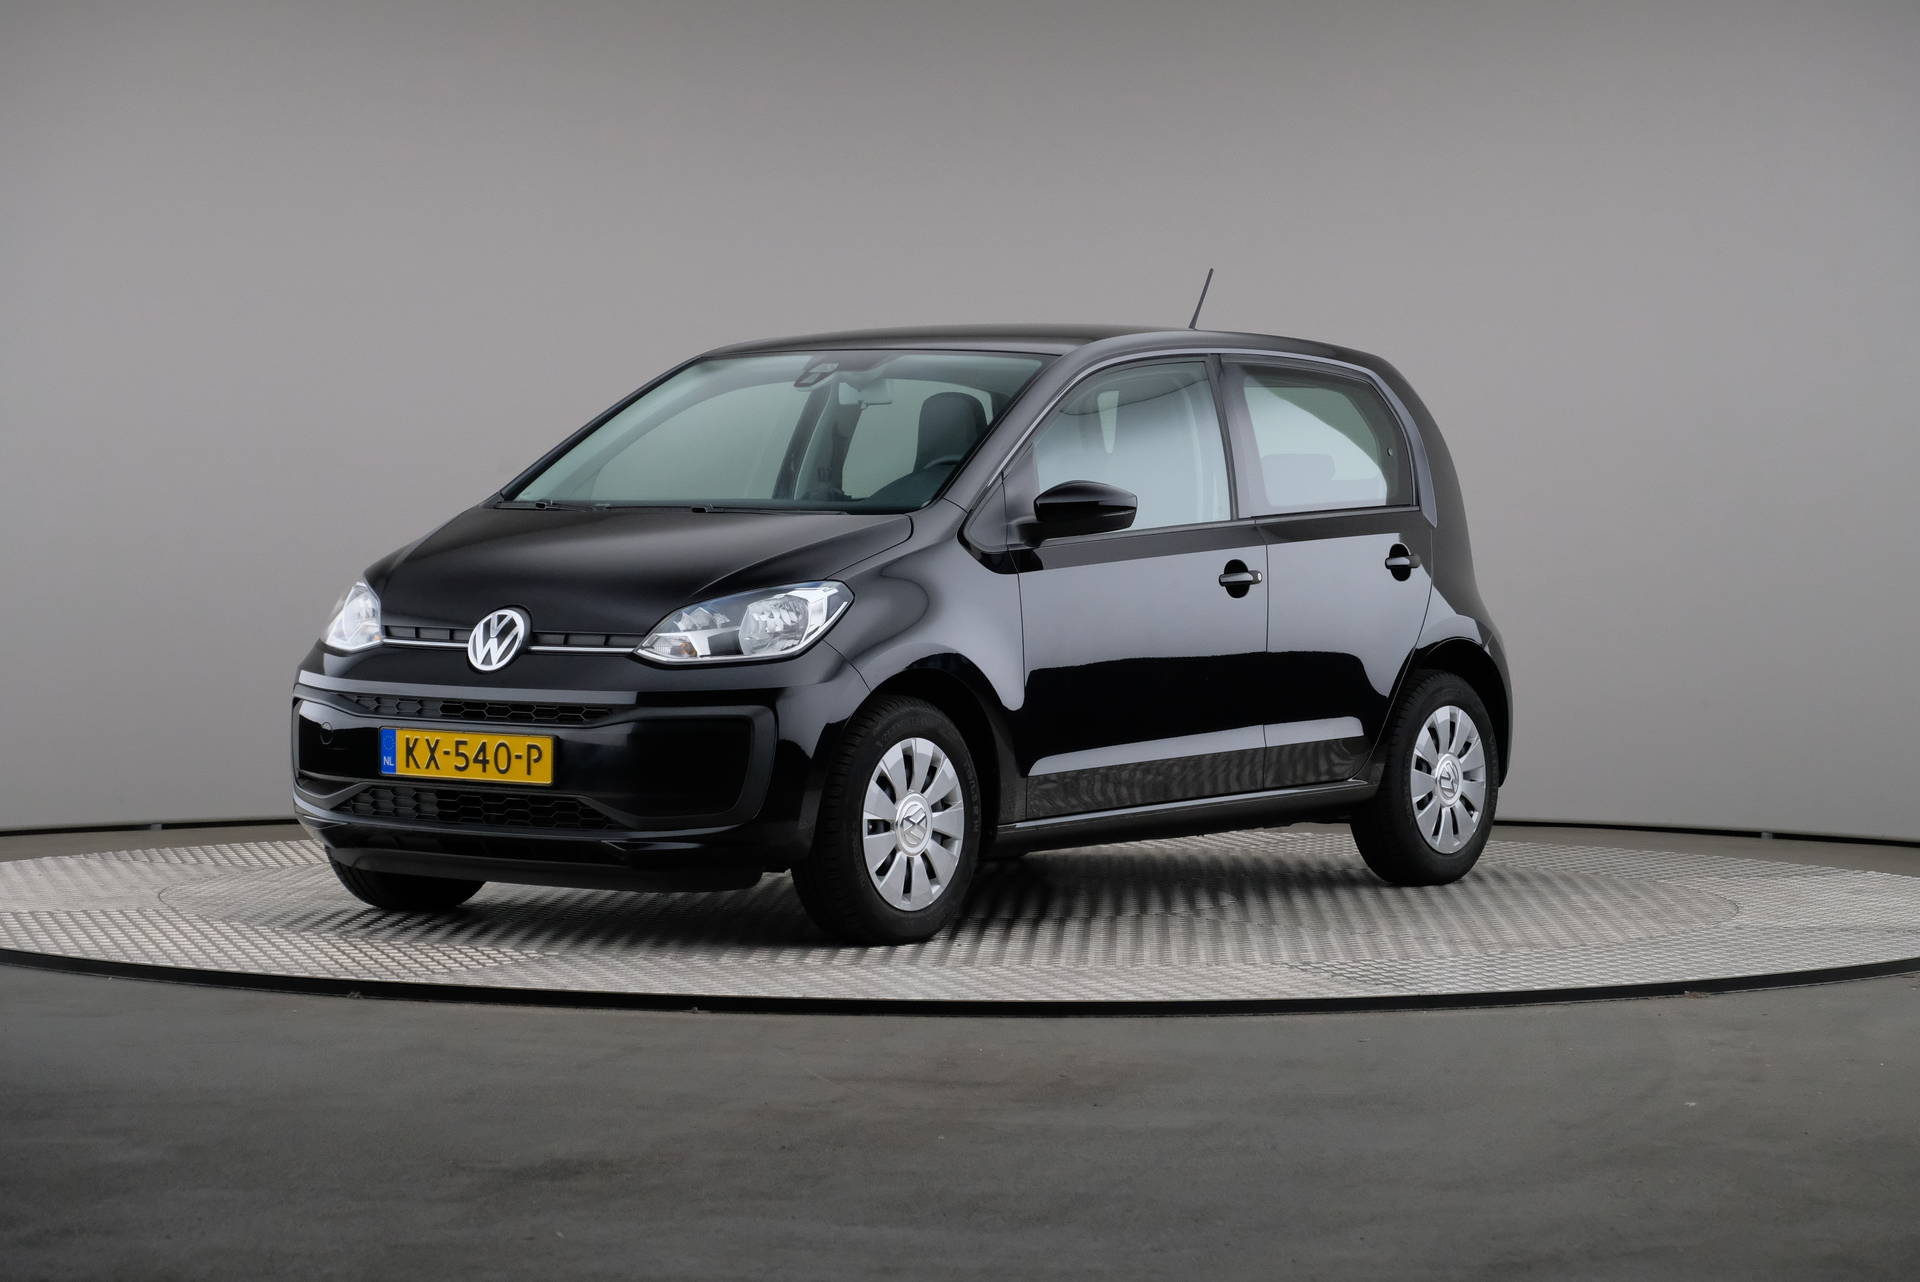 Volkswagen up! 1.0 44kW Move up! BlueMotion Technology, Airconditioning, 360-image0